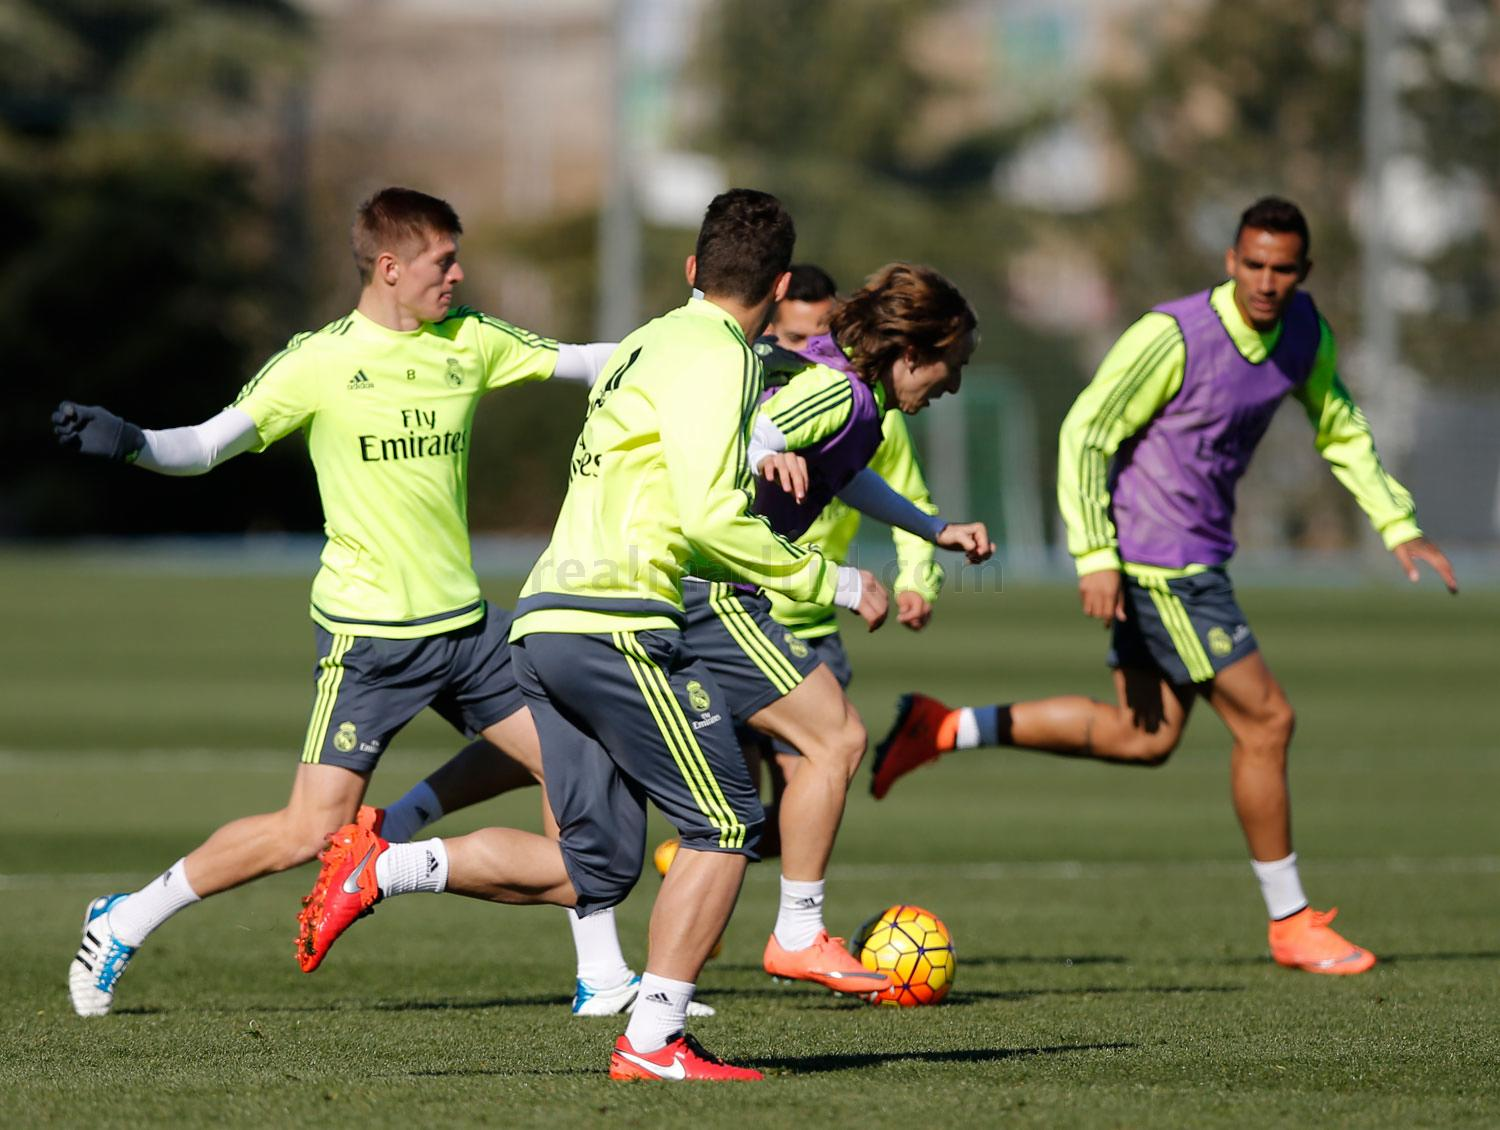 Real Madrid - Entrenamiento del Real Madrid - 20-02-2016